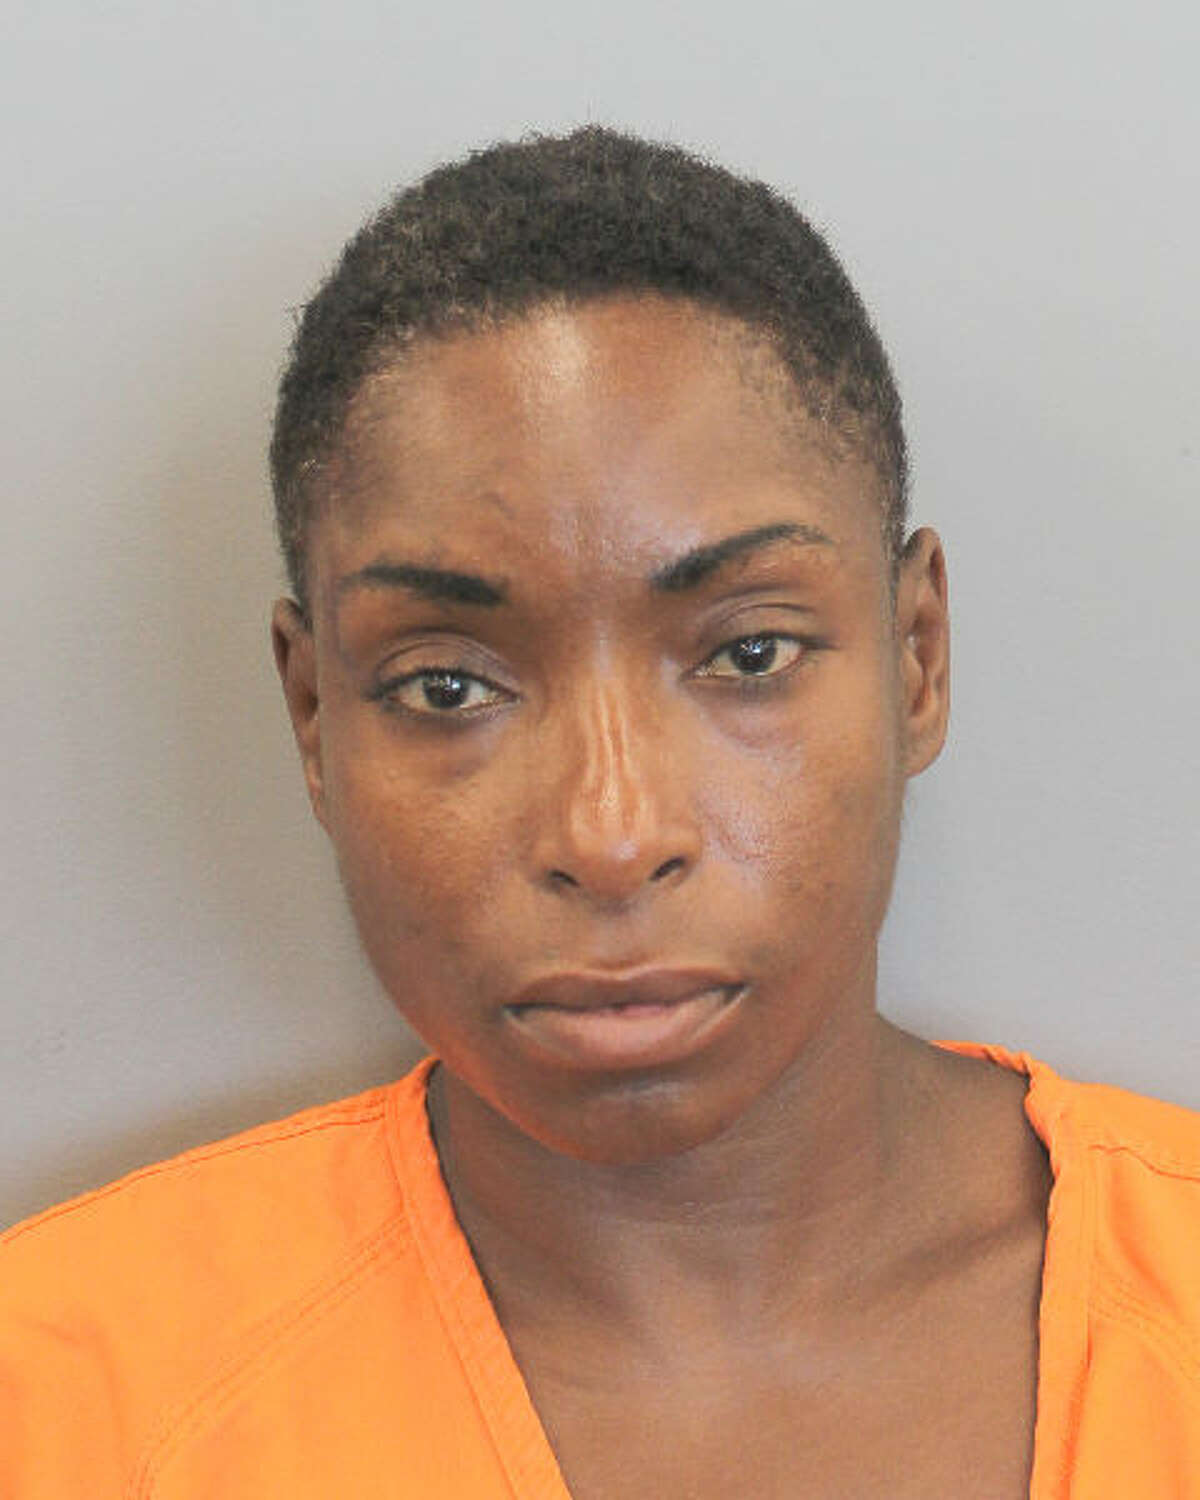 Letoia Monique Steward, 39, was charged with murder in the Monday morning stabbing death of her boyfriend at a west Houston hotel, according to police.